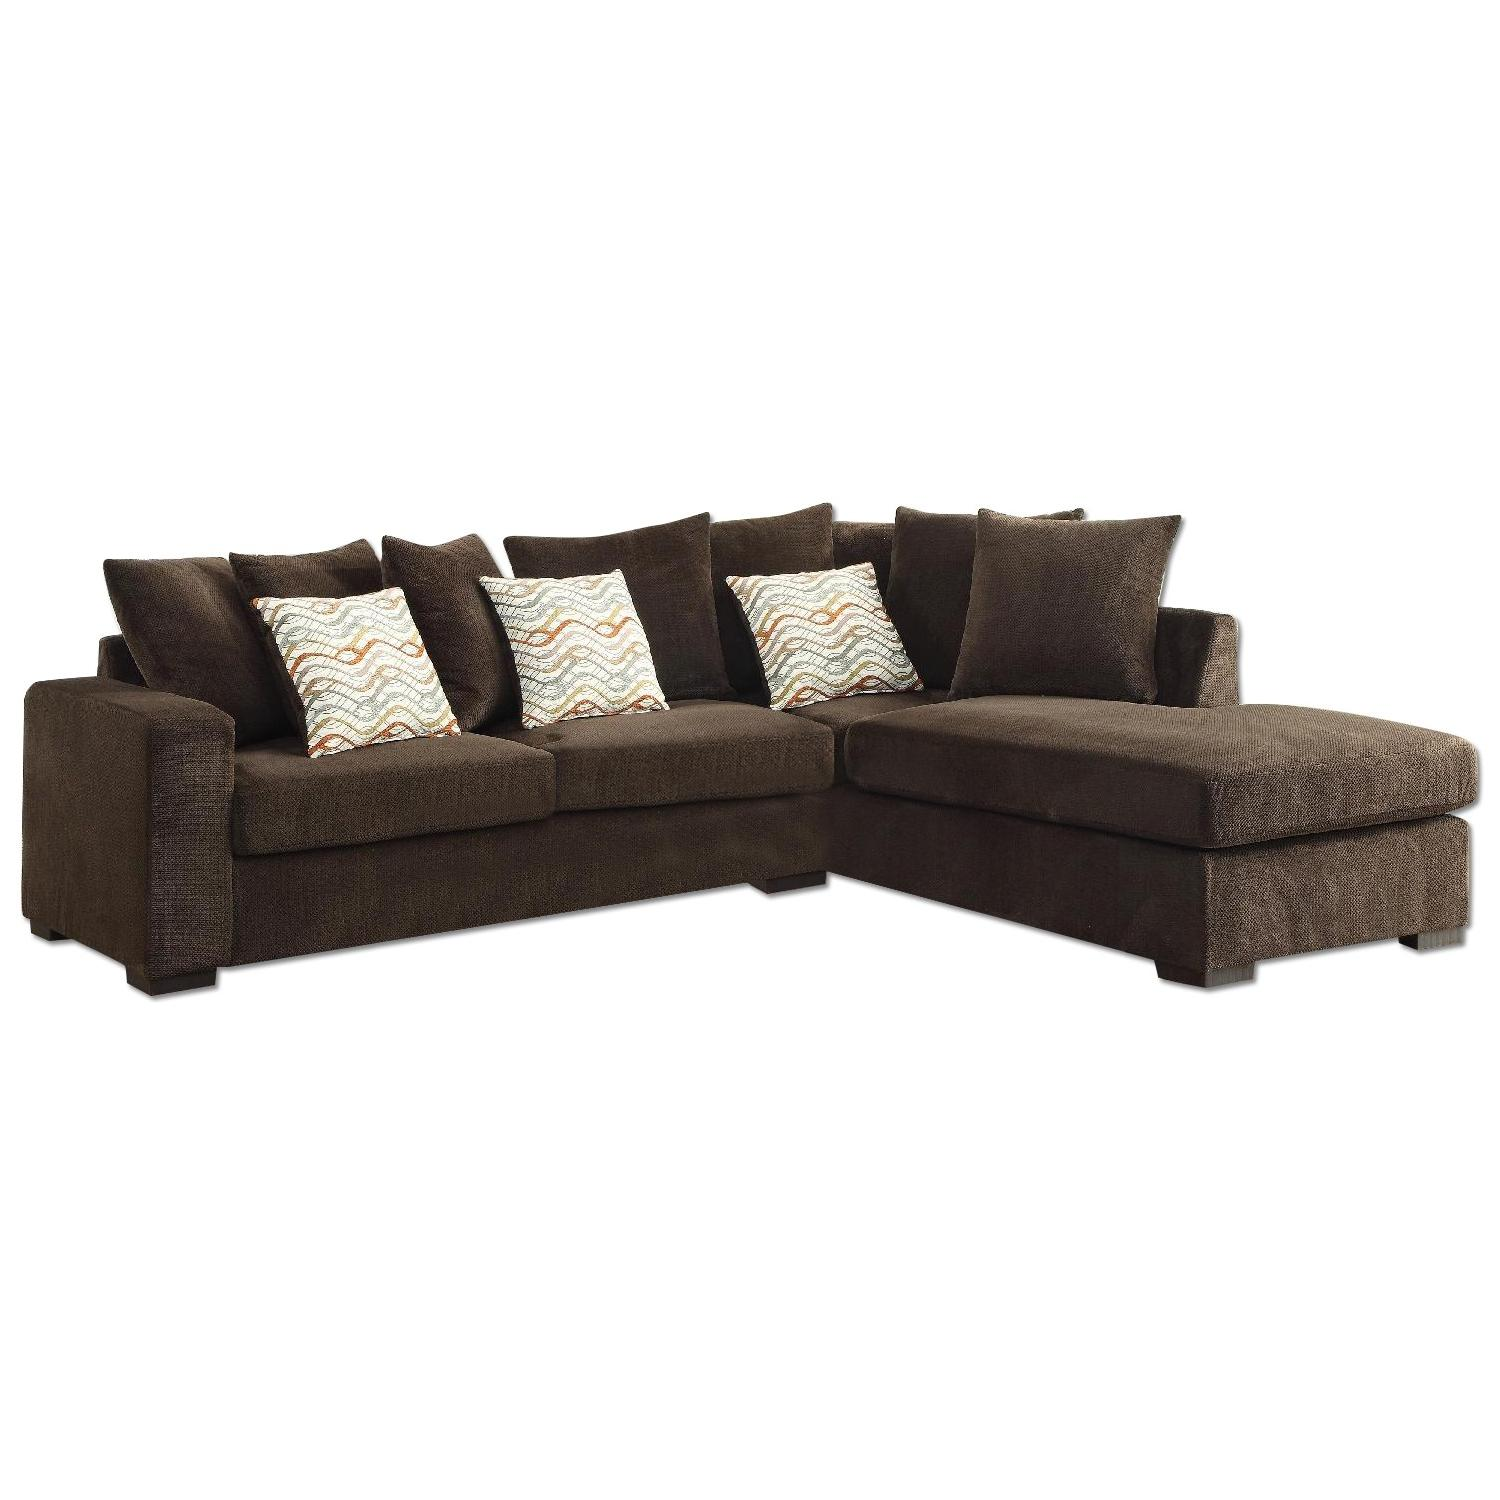 Sectional Sofa w/ Reversible Chaise in Textured Brown Chenile Fabric